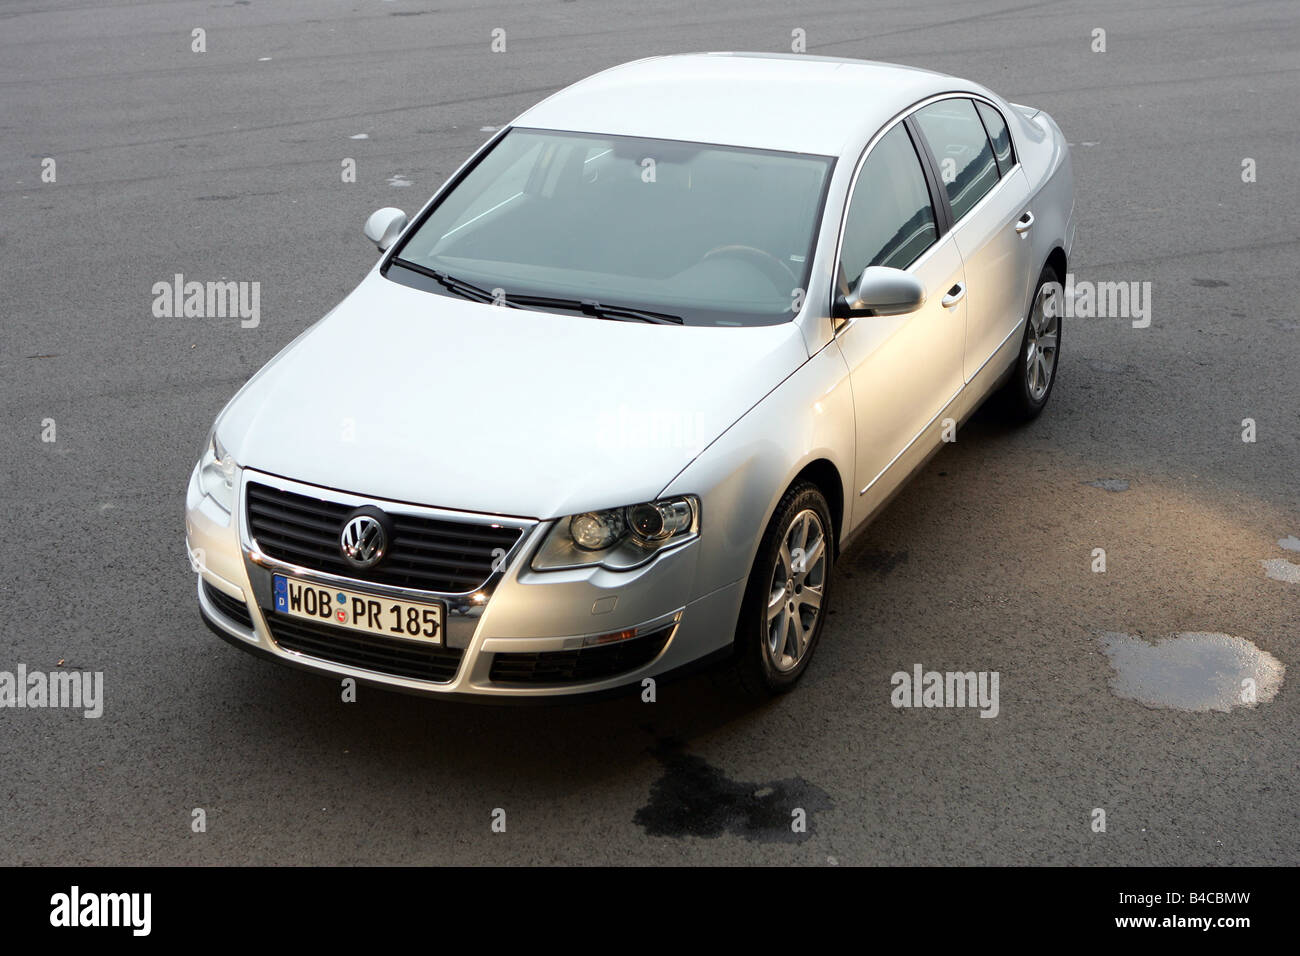 Car vw volkswagen passat 2 0 tdi dsg model year 2004 silver